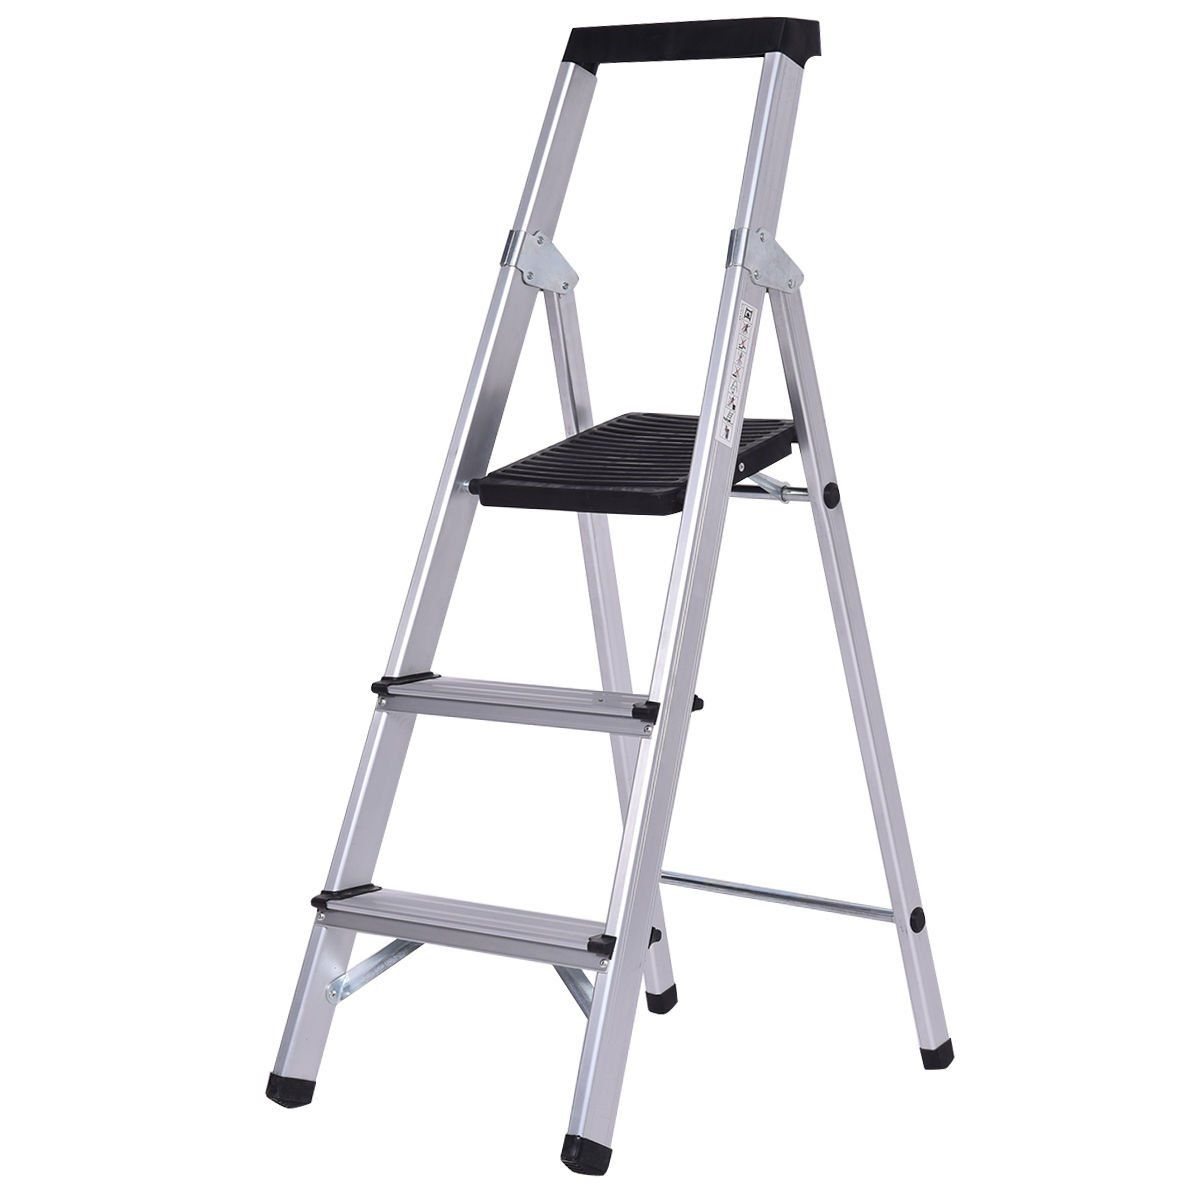 Ghp 330lbs Capacity 3step Nonslip Folding Aluminum Step Ladder With Rubber Pads See This Terrific Product This Is An Af In 2020 Step Ladders Ladder 3 Step Ladder